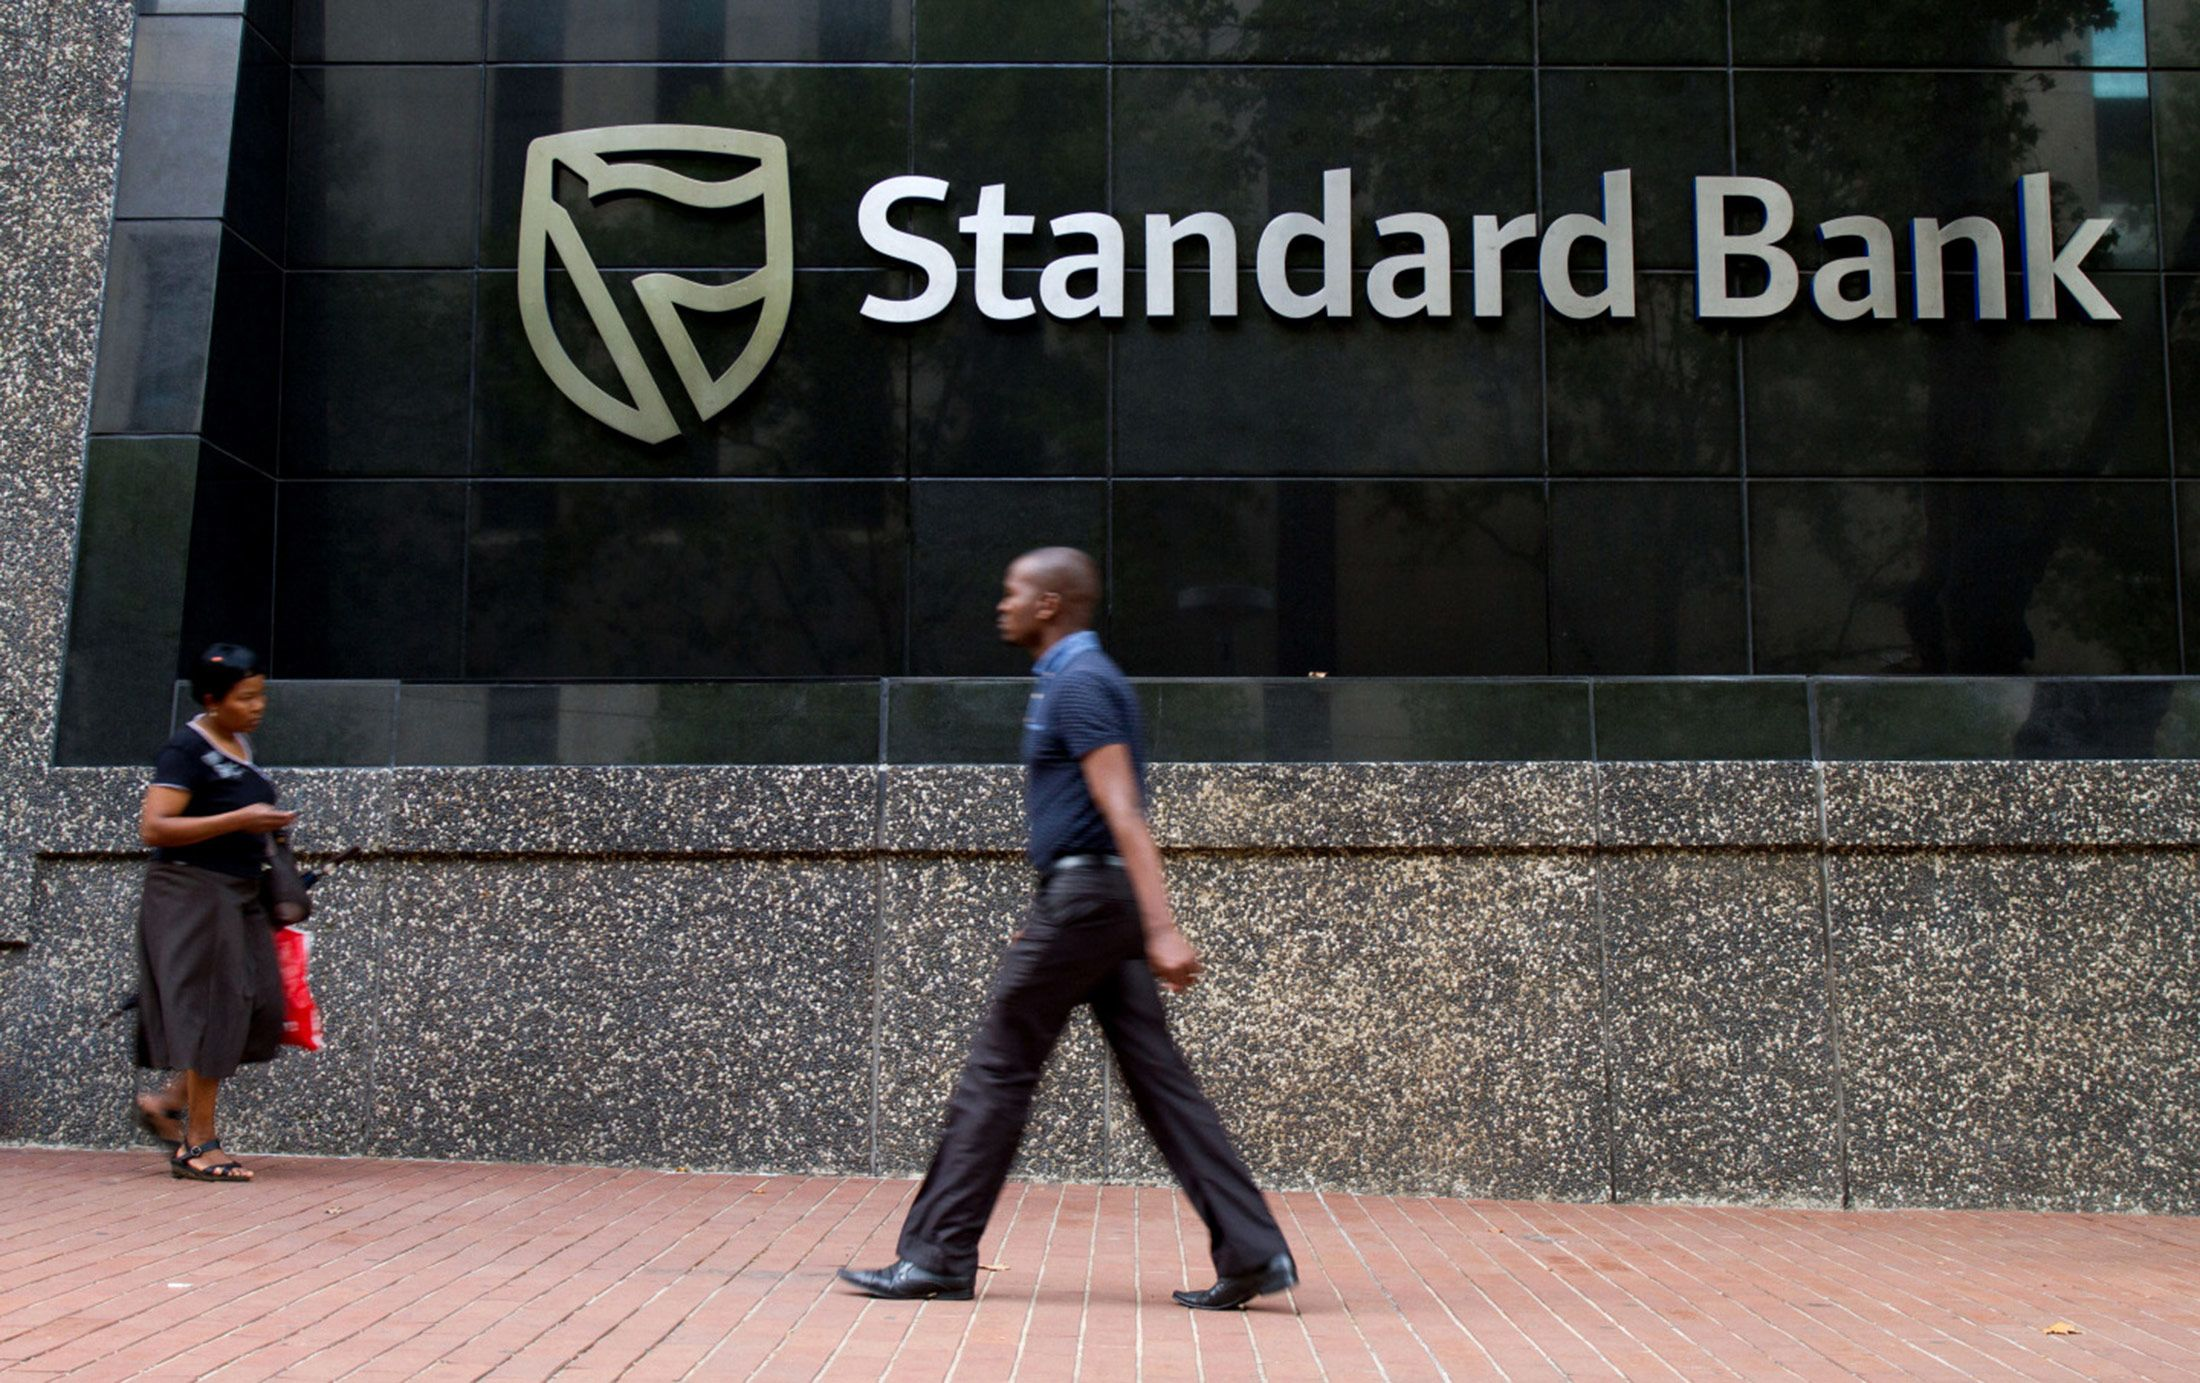 Standard Bank Starts Prime Broker to Gain From Hedge Fund Growth